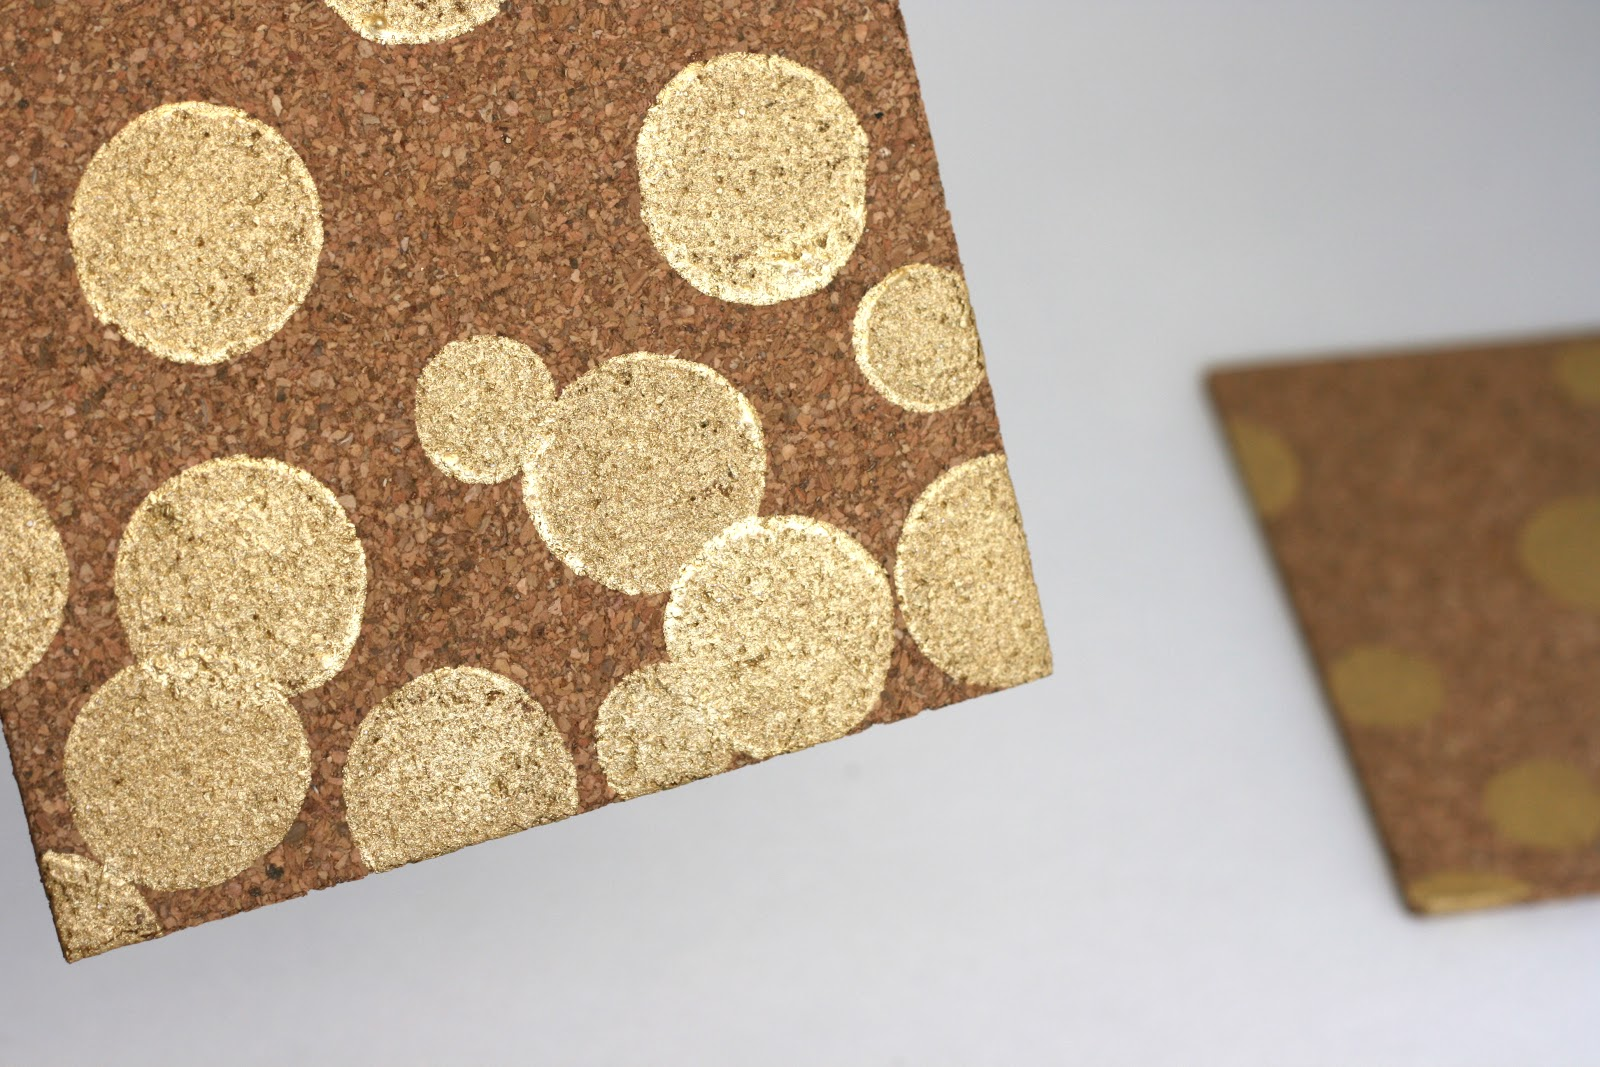 Need a Stylish Solution for Home Organization? Use Cork Boards!